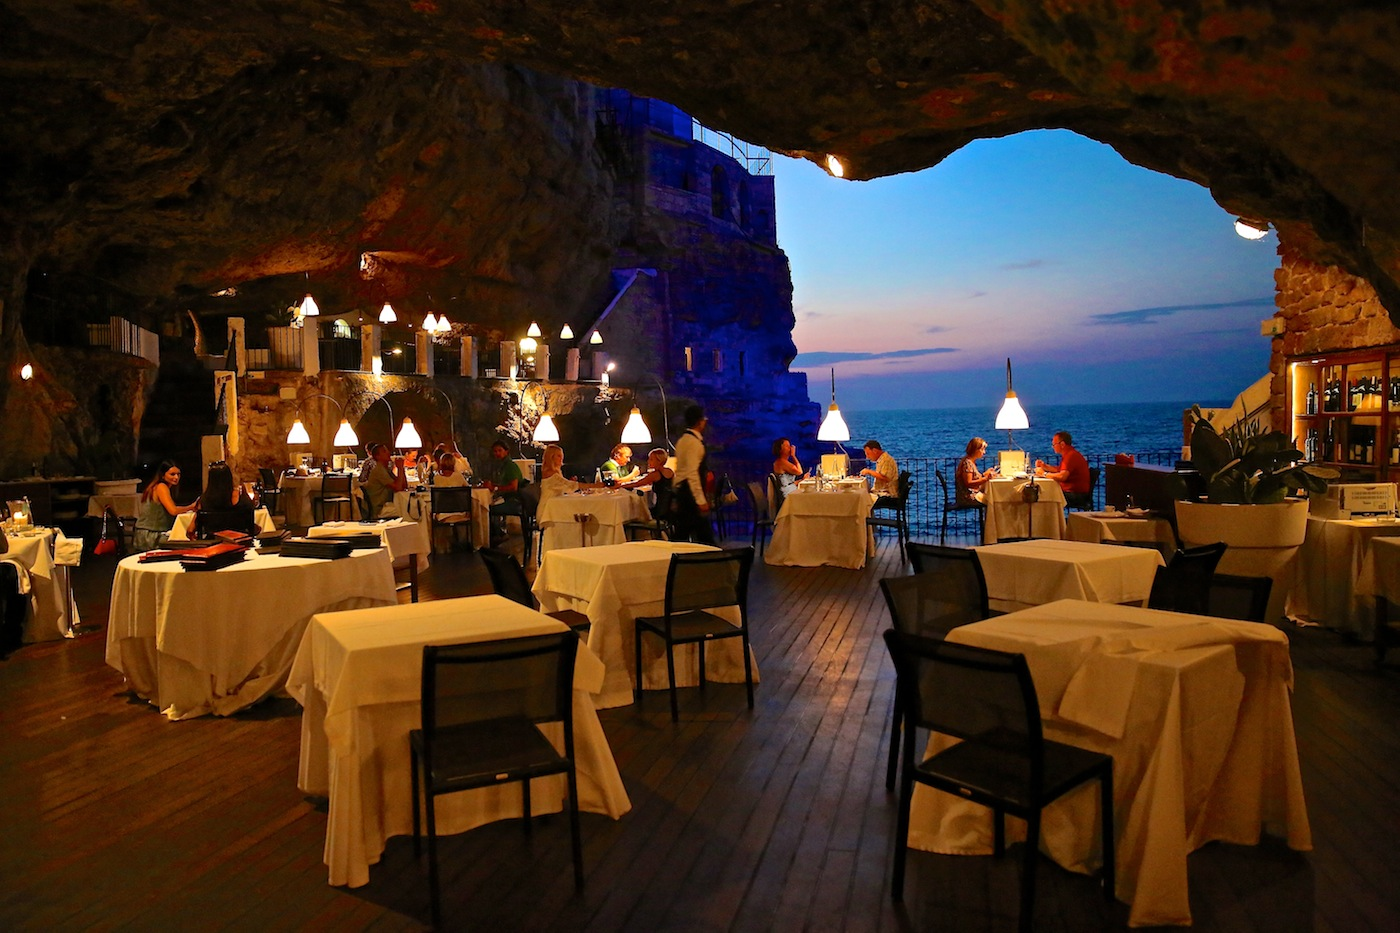 5 Restaurants Across The World In Unforgettable Settings. Outsourcing Data Entry India. Best Masters Programs In Education. Lawn Care Service Prices Junk Removal Raleigh. Free Antivirus Windows Server. Alpharetta Carpet Cleaning Devry Online Mba. Christian Colleges In The South. Culinary Schools In Philadelphia. Sql Server Deadlock Trace Internal Help Desk